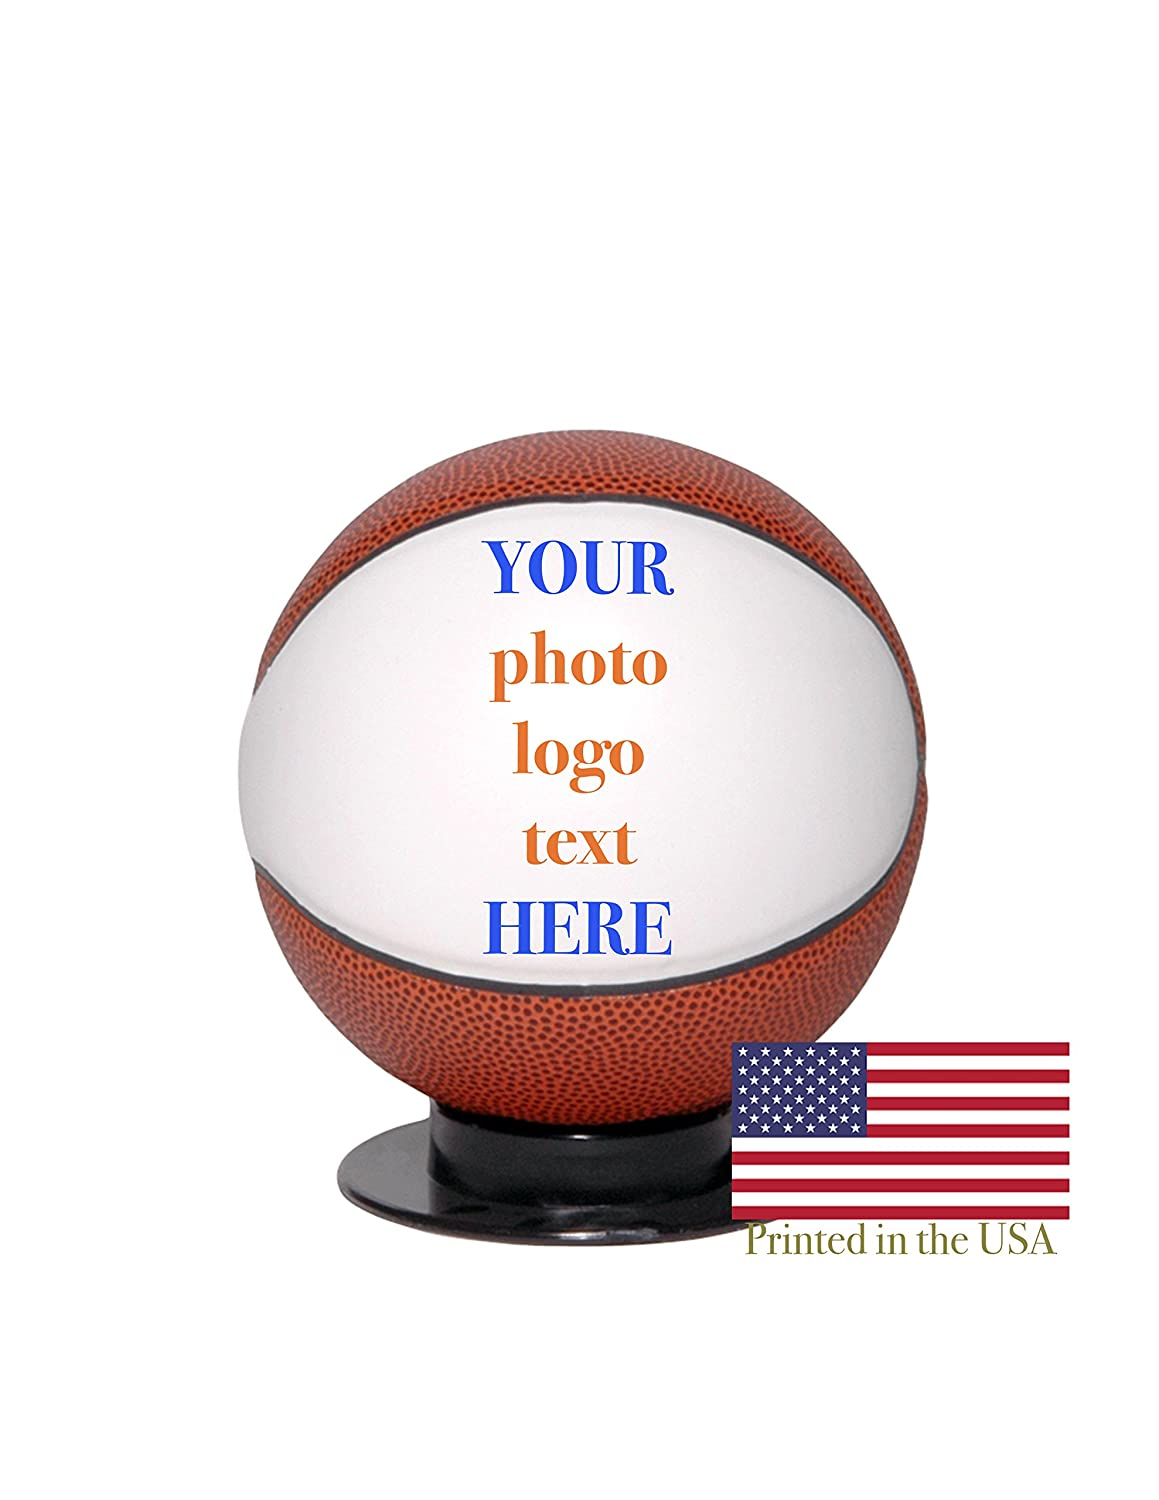 Custom Personalized Mini Basketball - 6 Inch Mini Sized Basketball - Ships Next Day, High Resolution Photos, Logos & Text on Basketballs - for Trophies, Personalized Gifts Ballstars